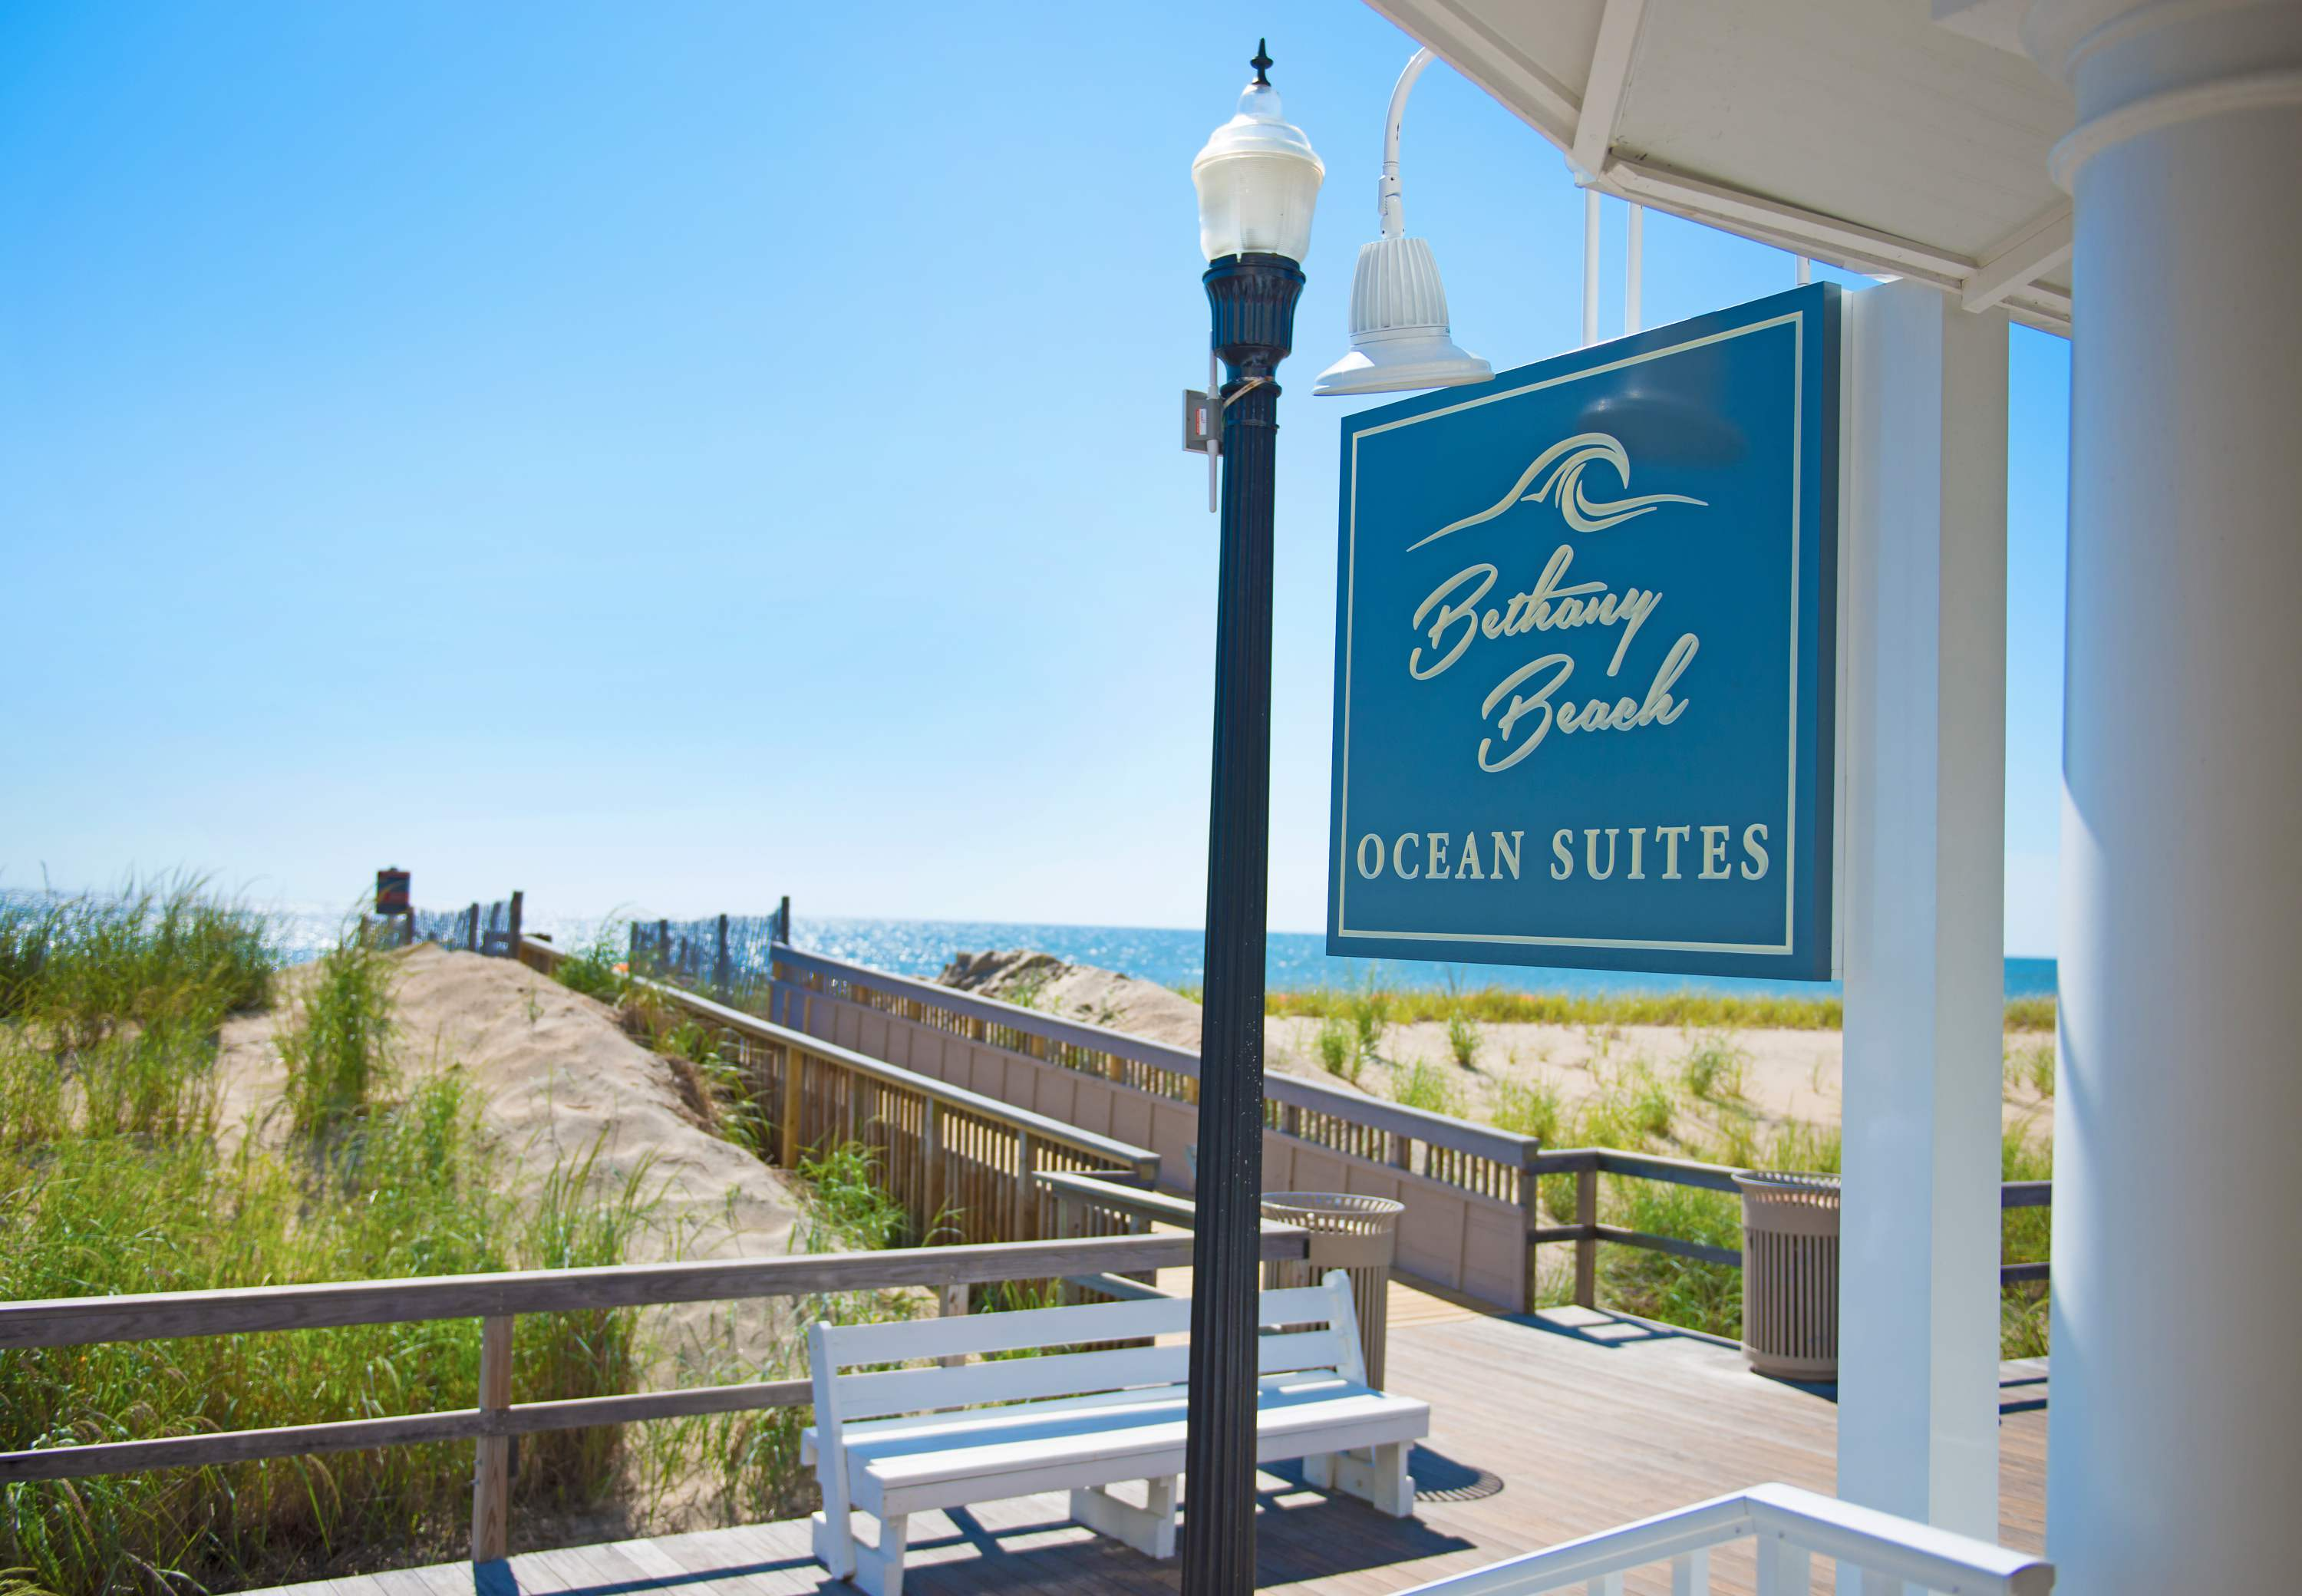 Bethany Beach Ocean Suites Residence Inn By Marriott 99 Hollywood